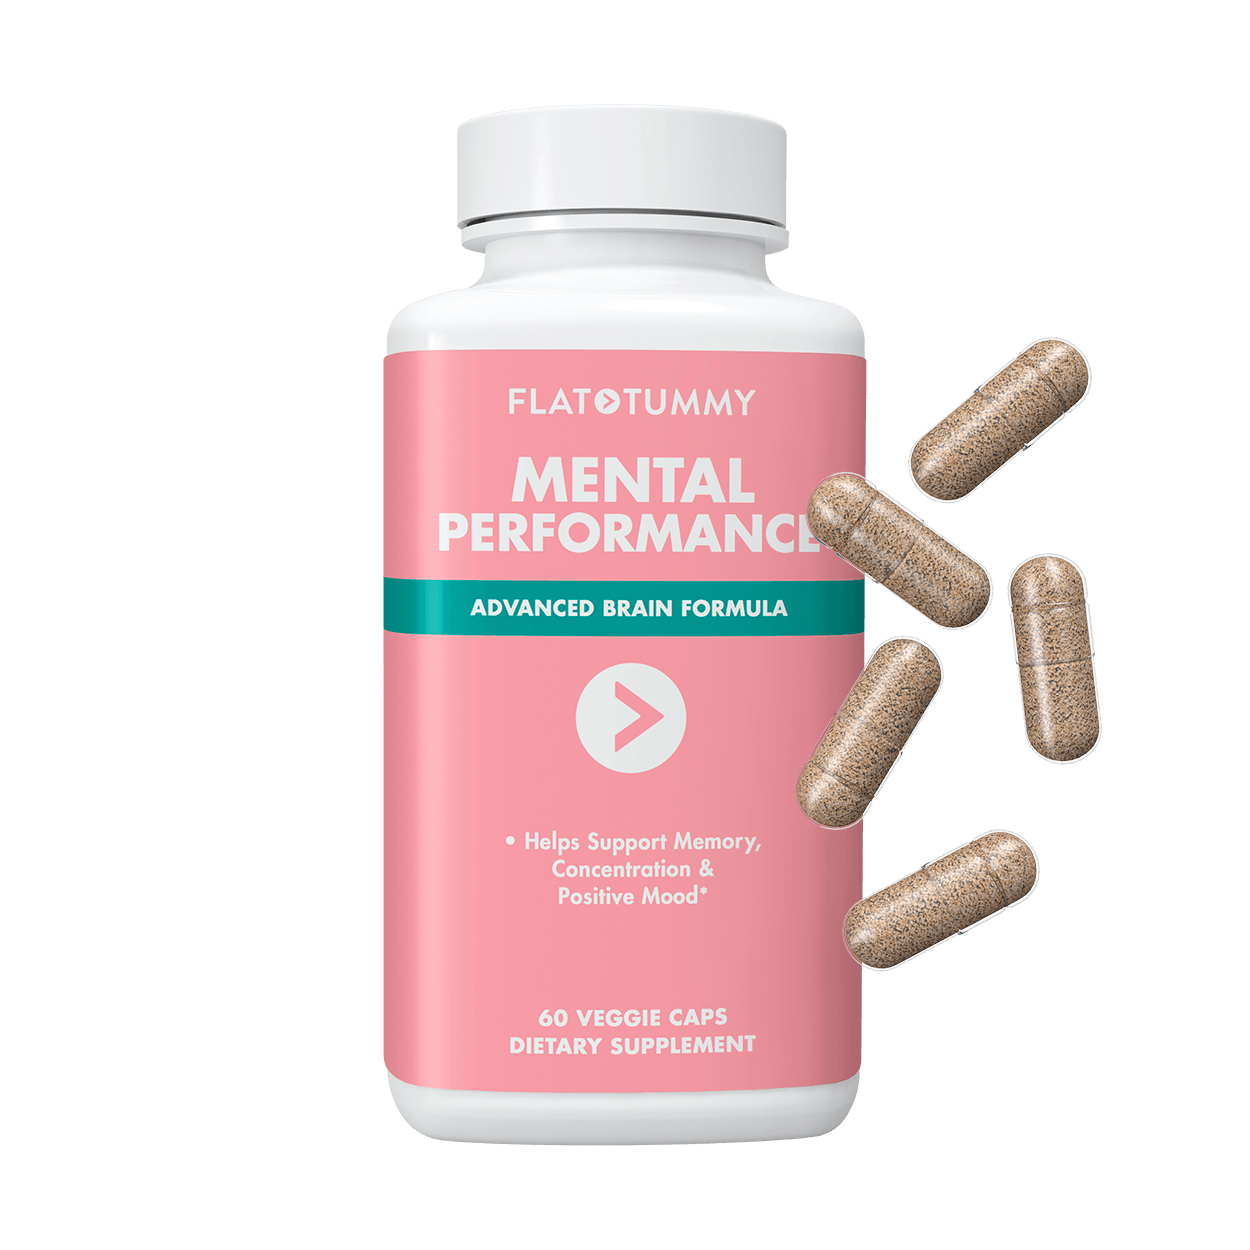 Flat Tummy Co Supplements 1 Bottle Mental Performance